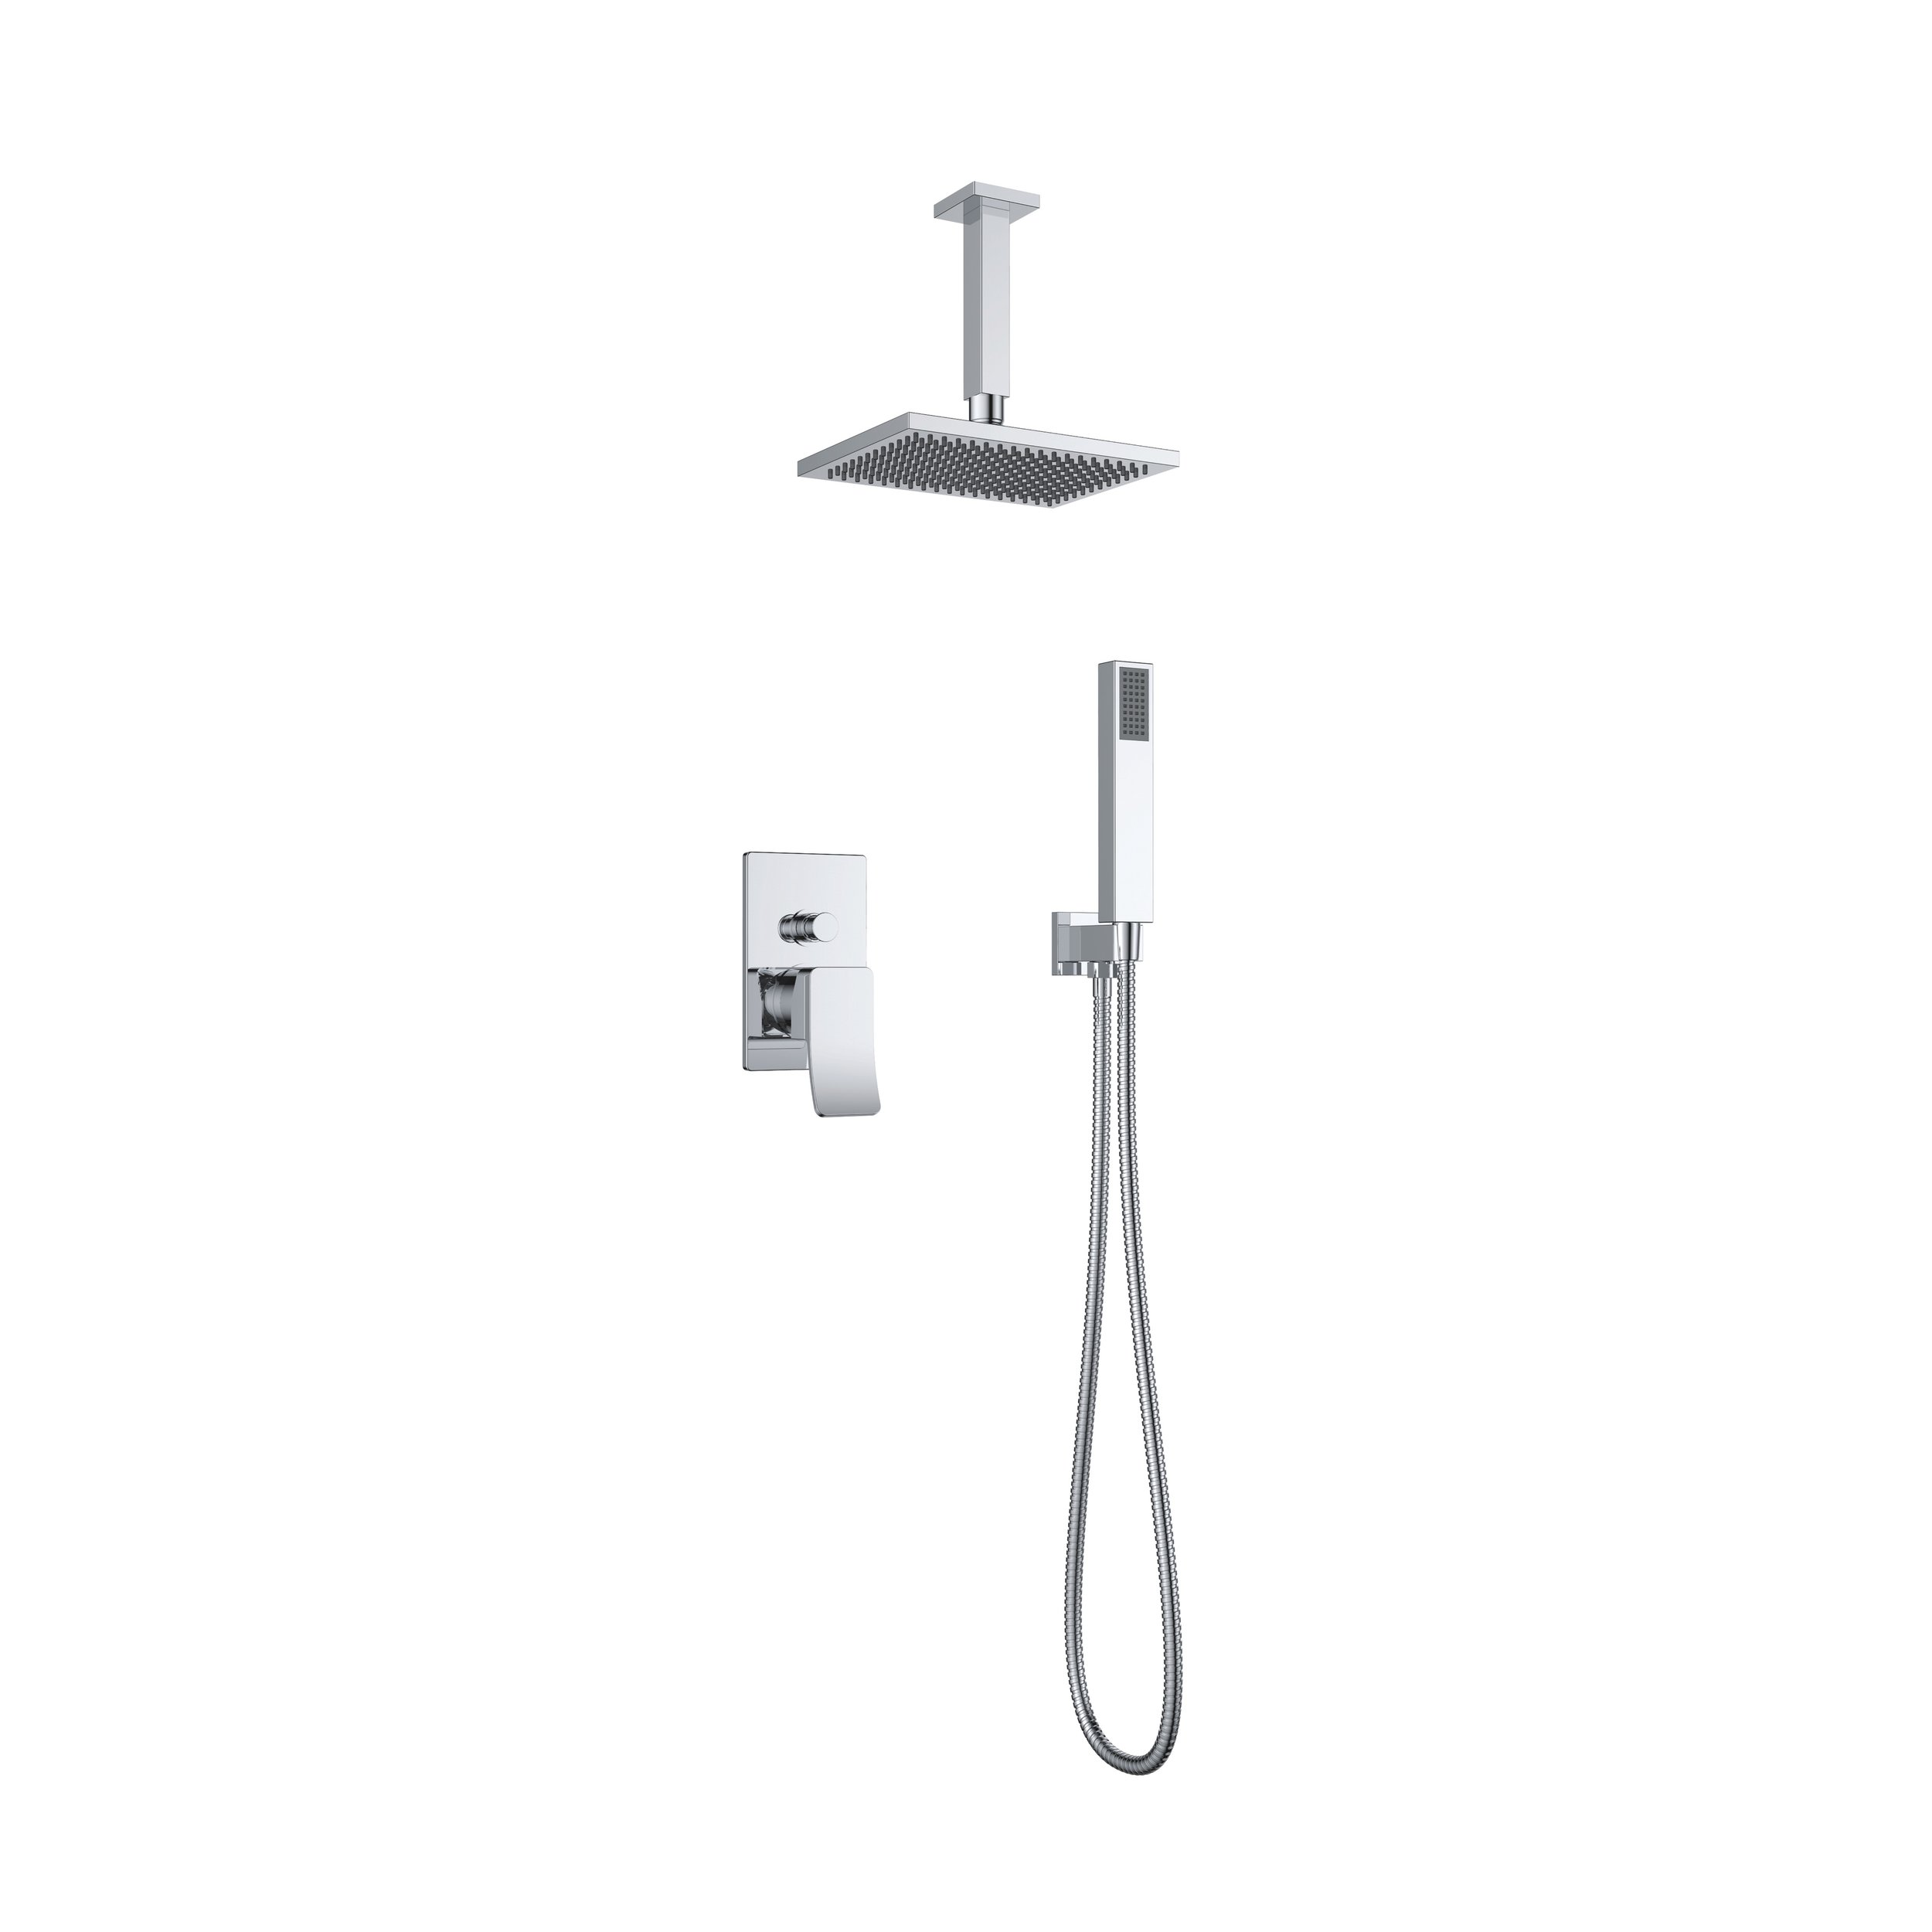 7327-101: Concealed shower valve with shower set and head shower